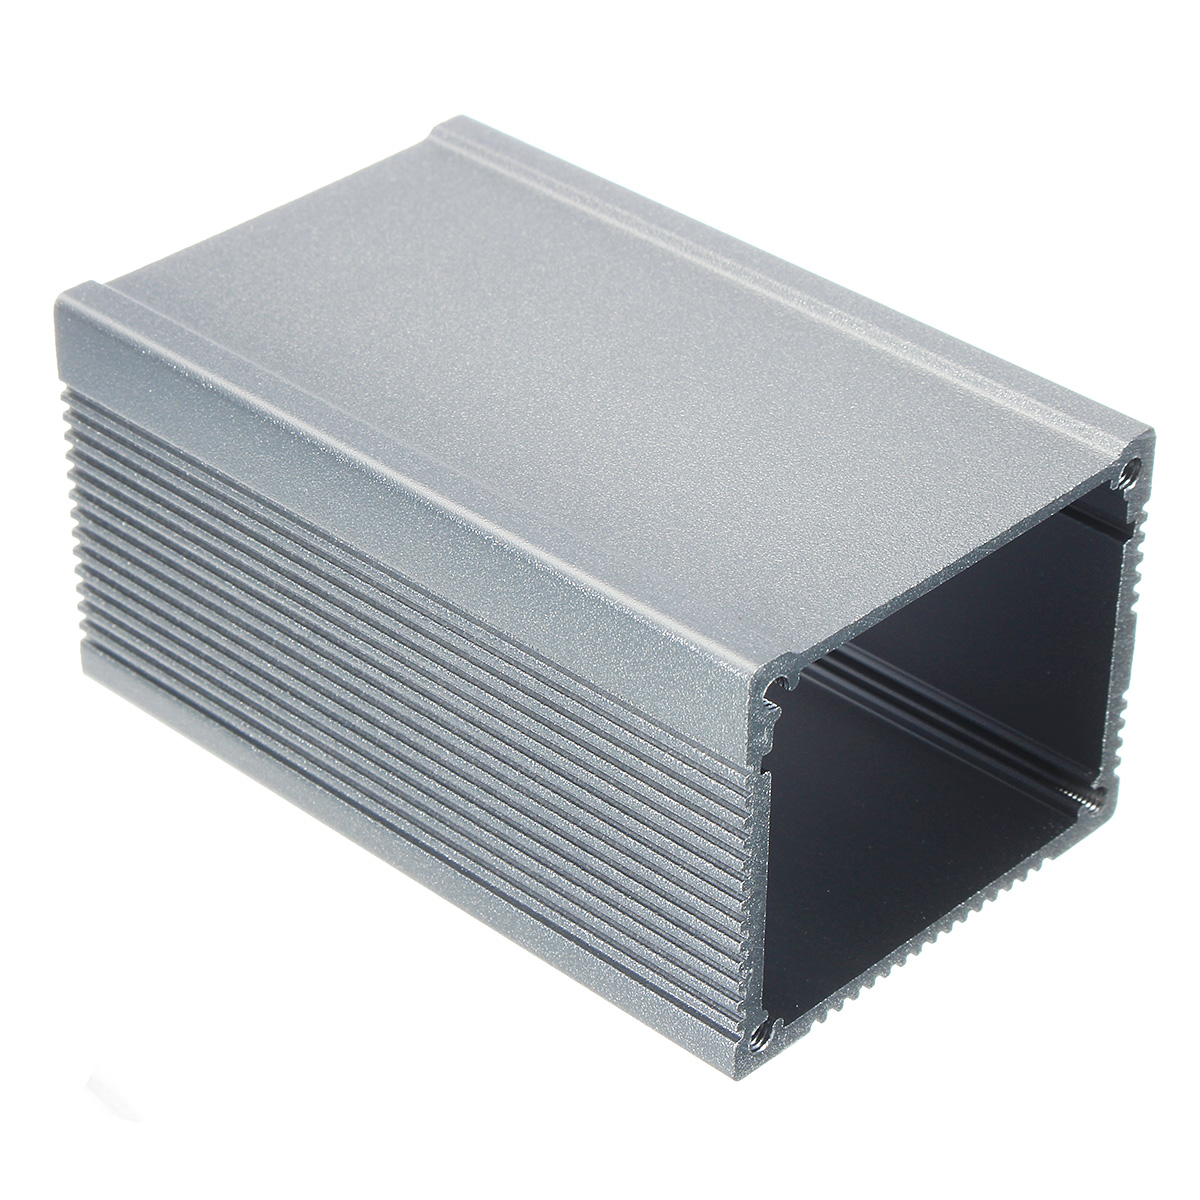 DIY Extruded Aluminum Instrument Box Enclosure Case Project Electronic 80*50*40mm Silver